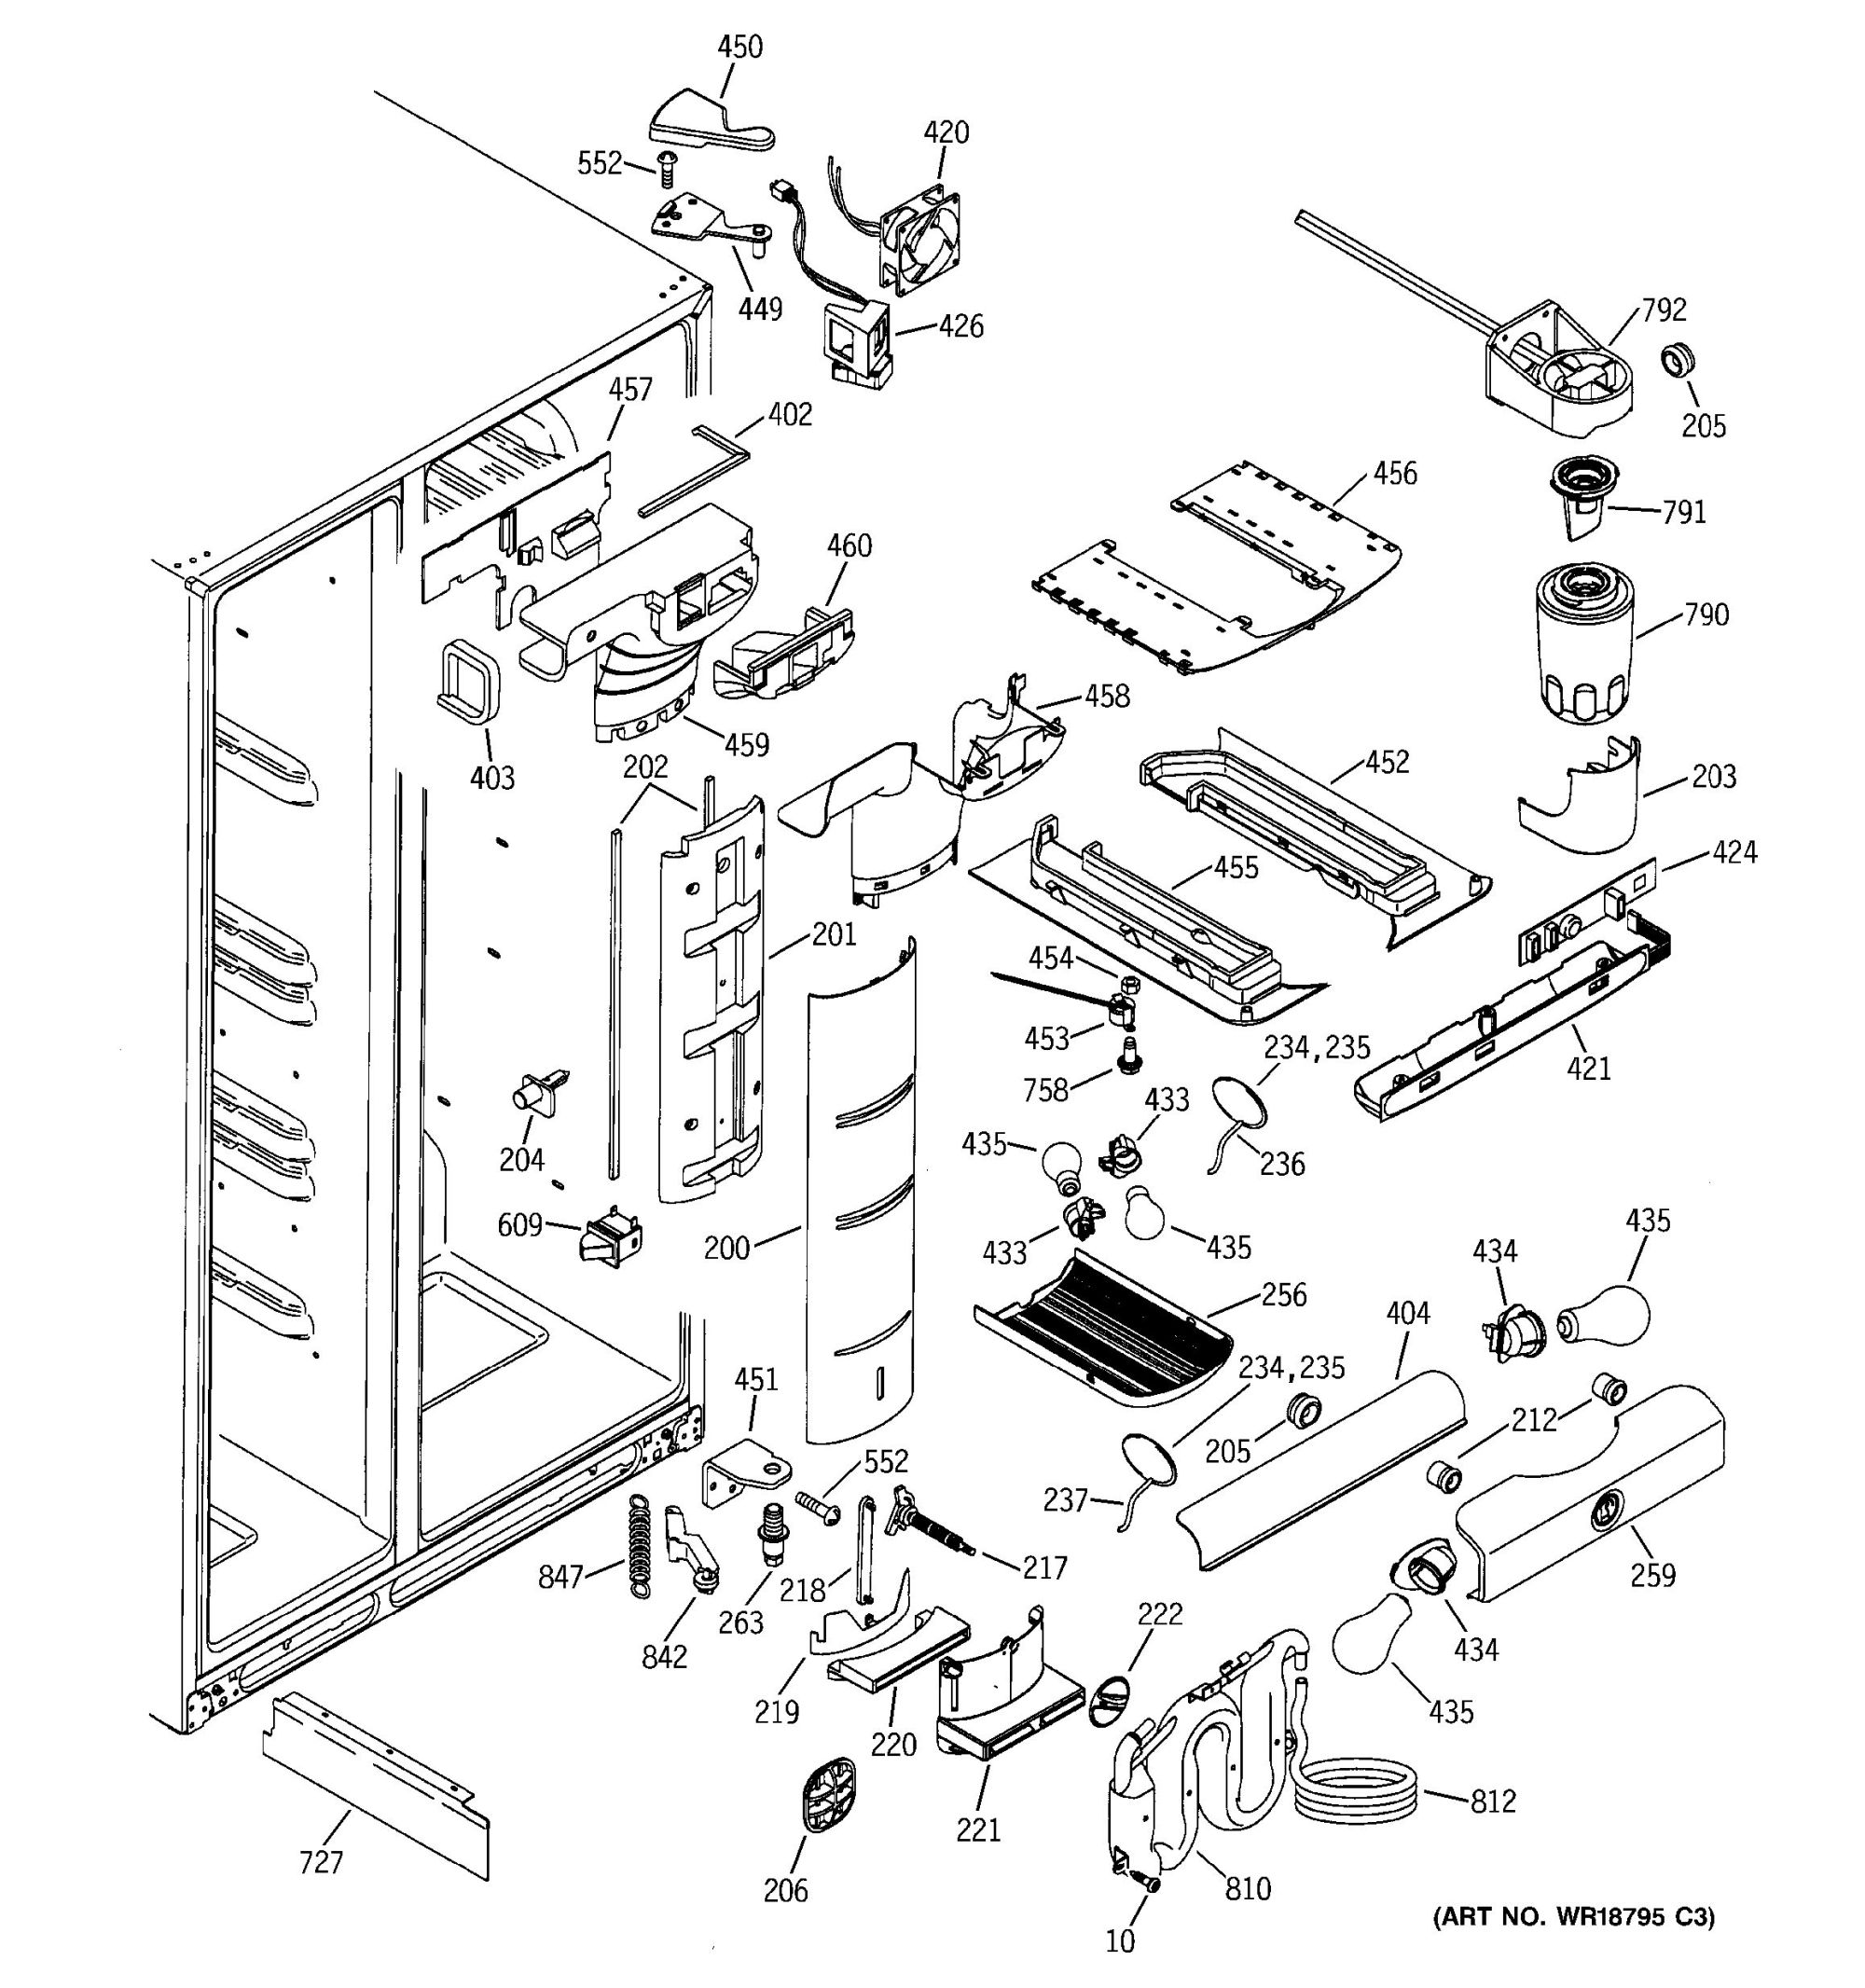 hight resolution of the control panel ge frame 7 parts assembly view for fresh food section